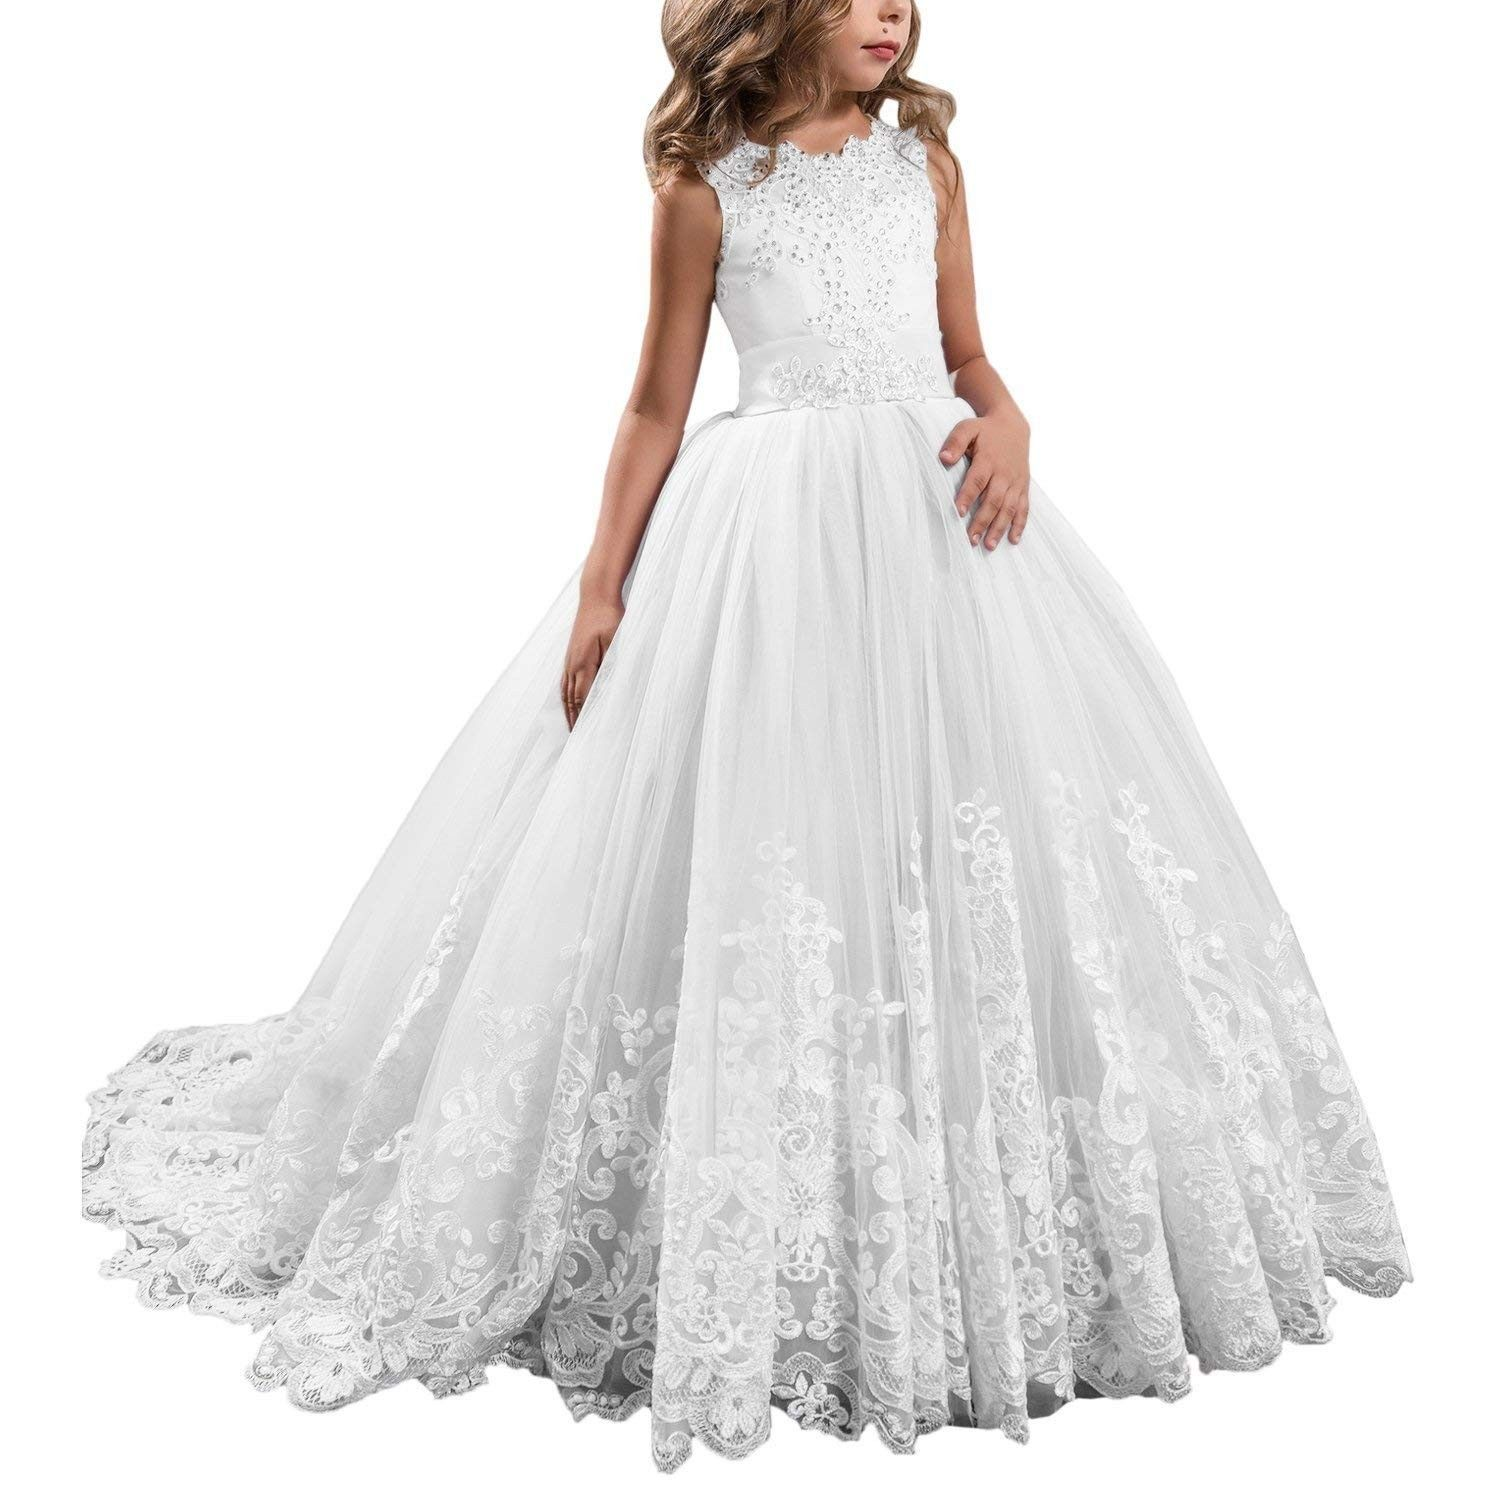 Ball Gown Lace Girls Toddler Pageant Dress First Communion Dress Fb055 A White C617z55x0l4 Flower Girl Dresses Tulle Girls Pageant Dresses Kids Pageant Dresses For Teens [ 1500 x 1500 Pixel ]